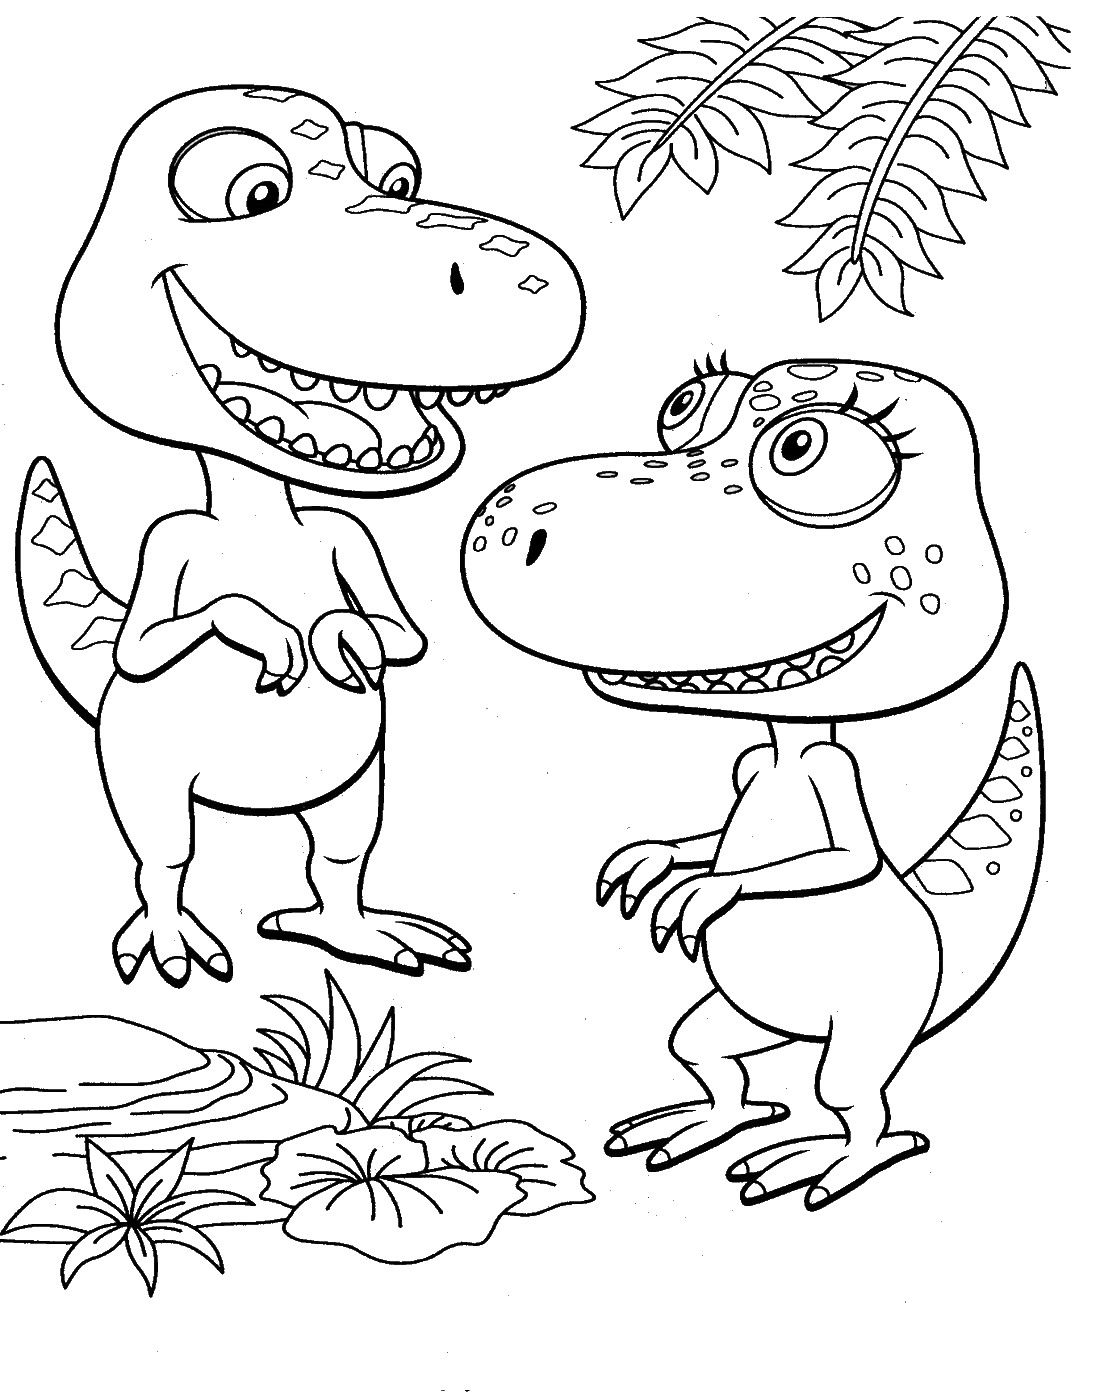 dinosaur printable coloring sheets coloring pages images dinosaurs pictures and facts page sheets coloring dinosaur printable